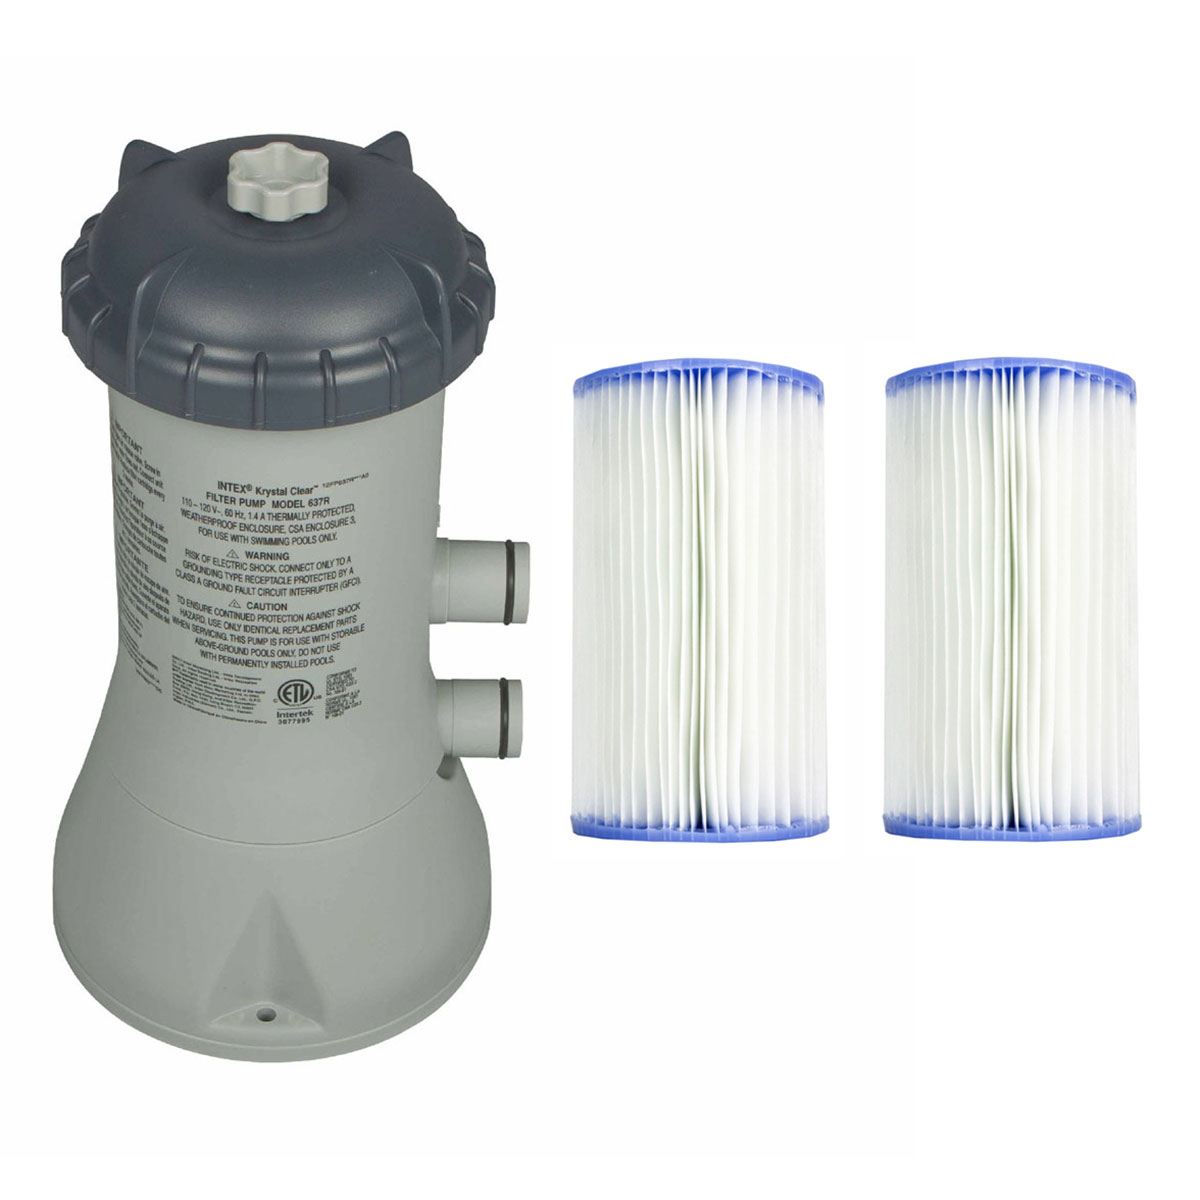 Details about Intex 1000 GPH Easy Set Above Ground Swimming Pool Filter  Pump System + Filters